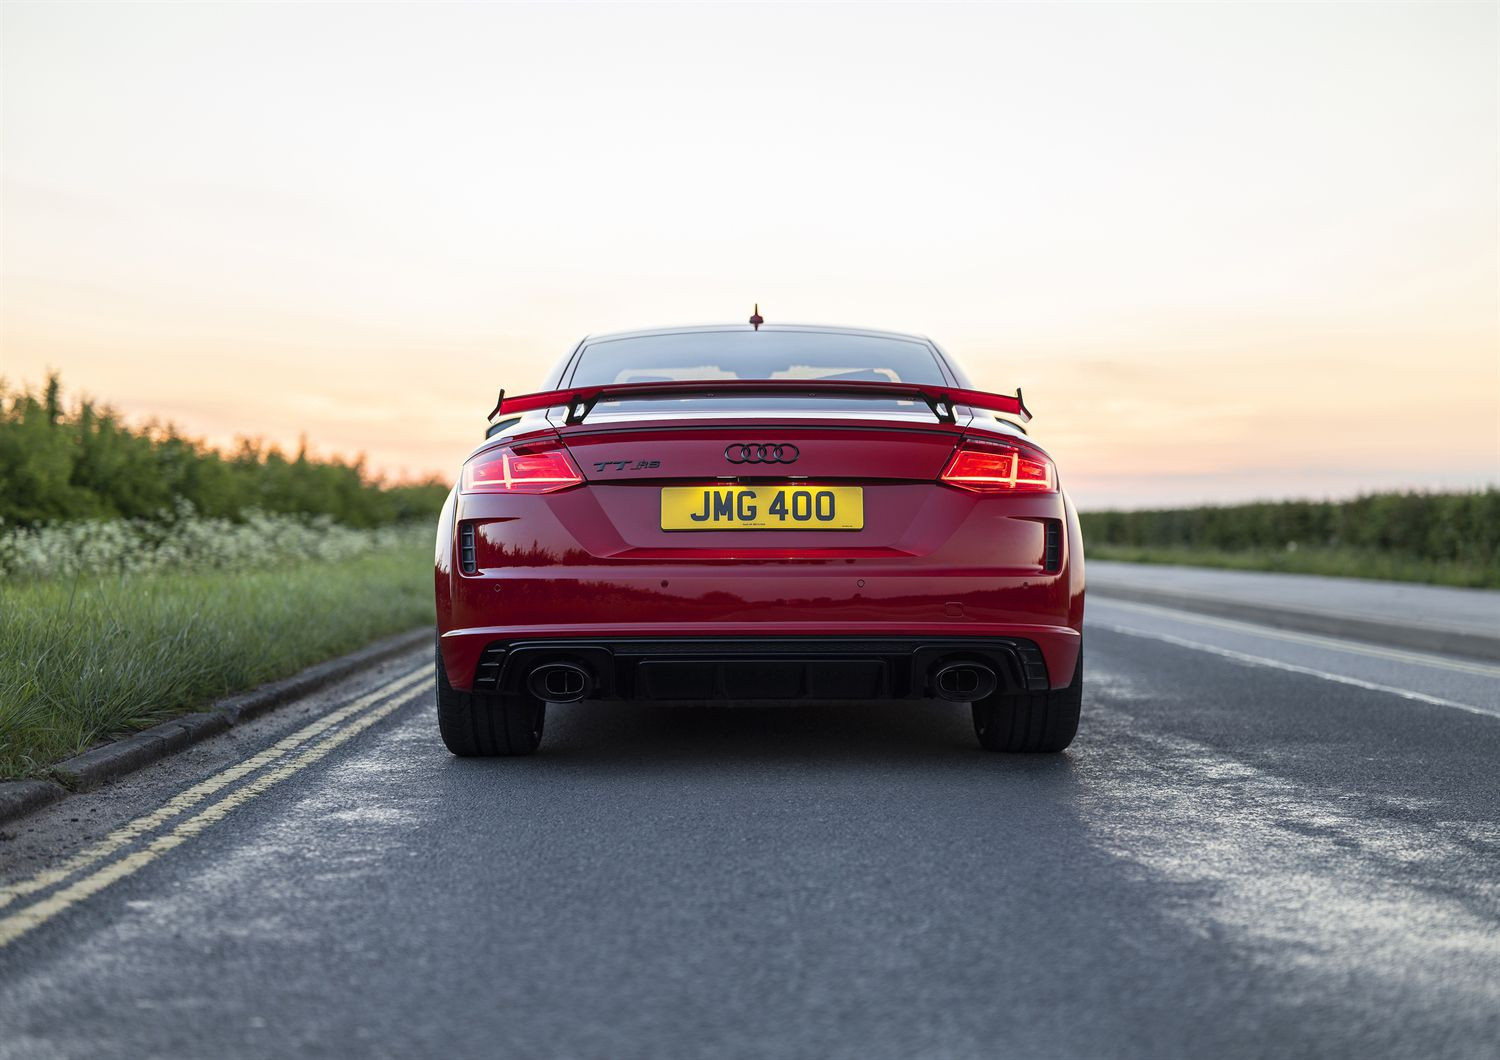 Rear view of the Audi TT RS